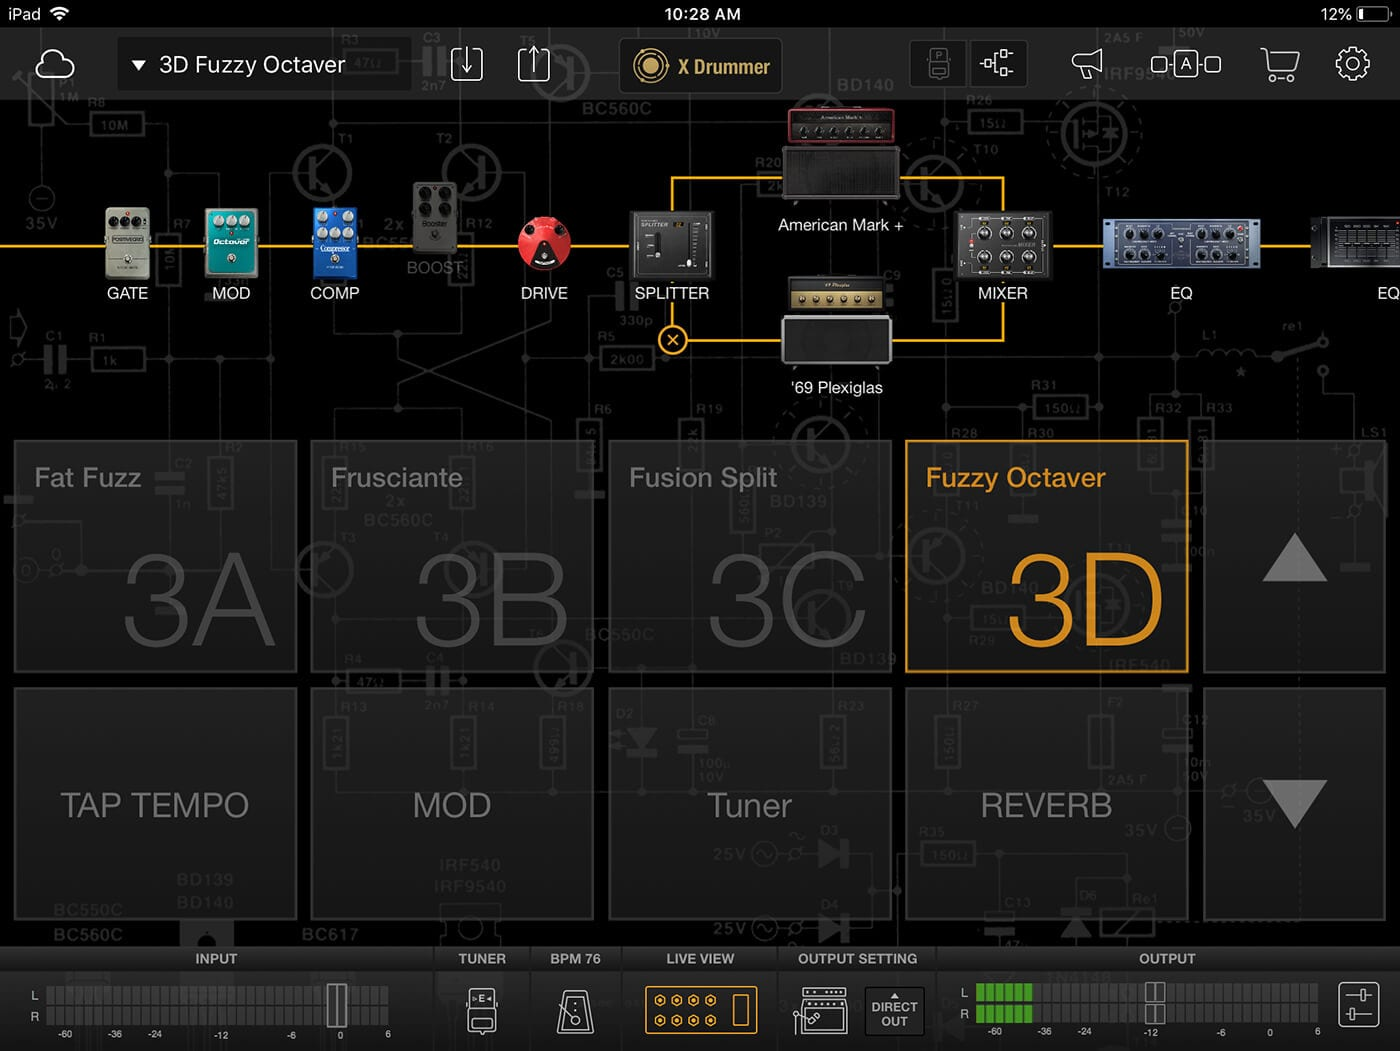 ias FX app's Live View Mode on an iPad